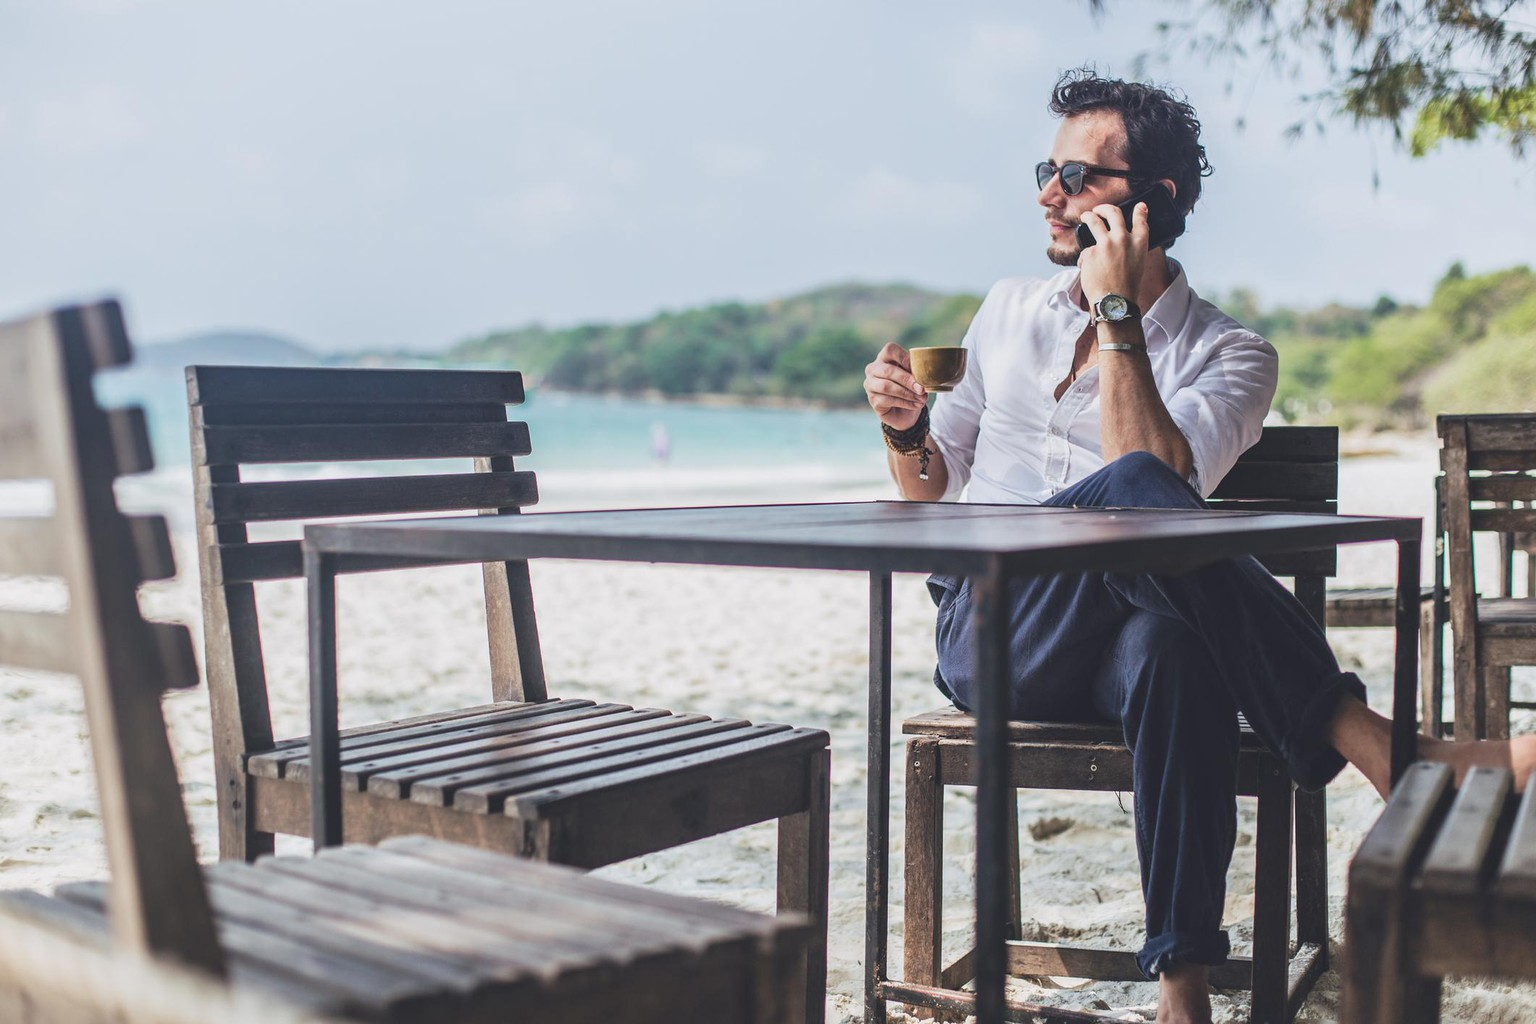 One man, man on the beach, drinking coffee in cafe, talking on mobile phone.